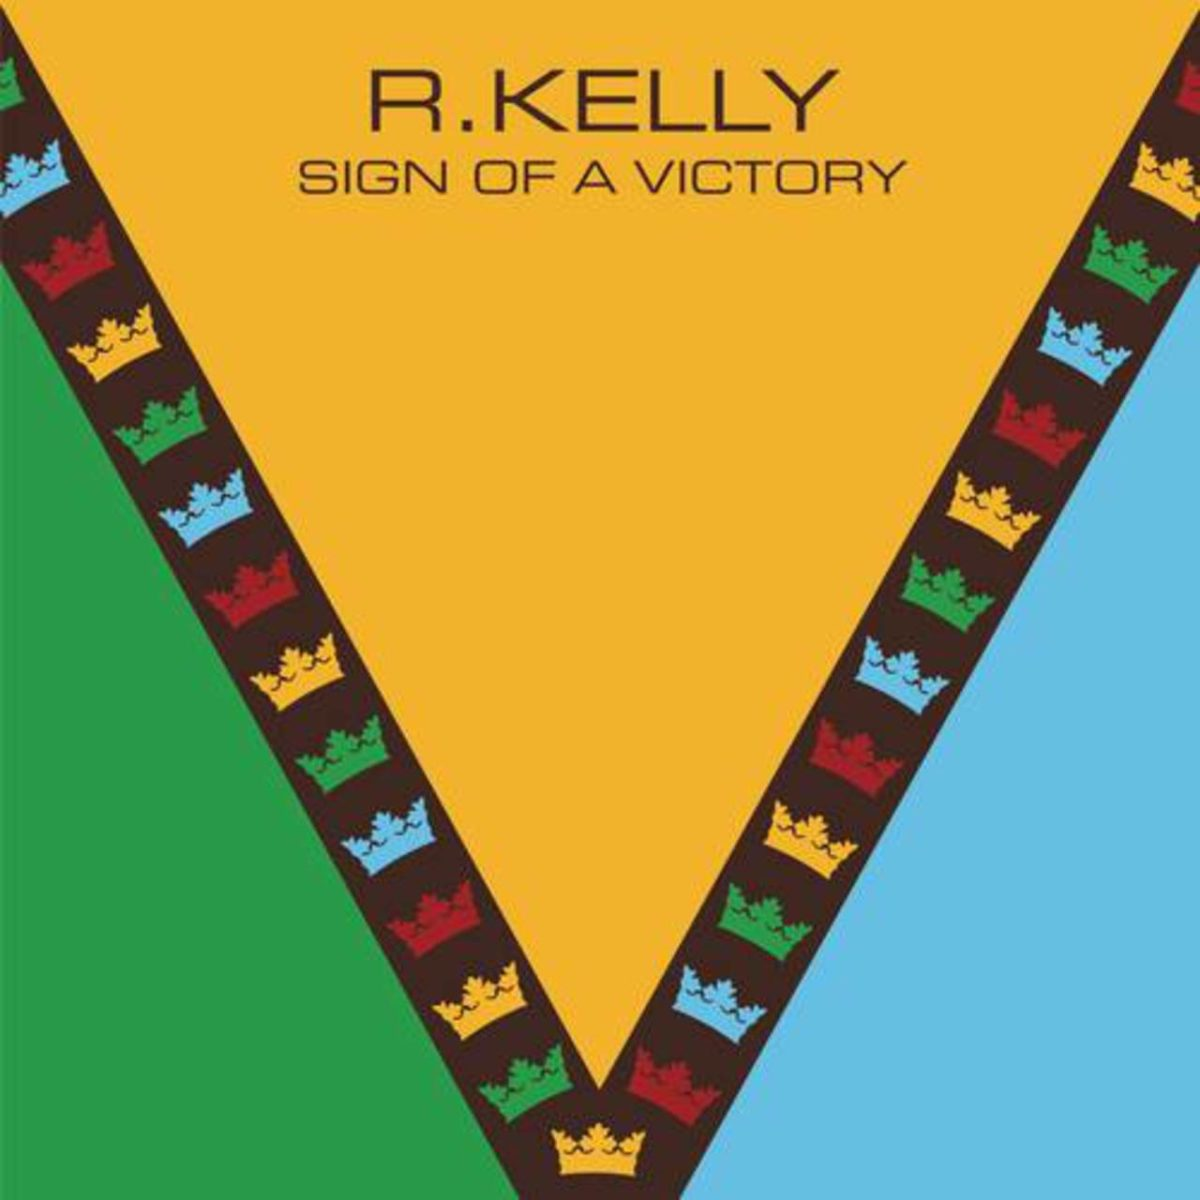 R. Kelly - Sign Of A Victory (ft. Soweto Spiritual Singers) (Cover)